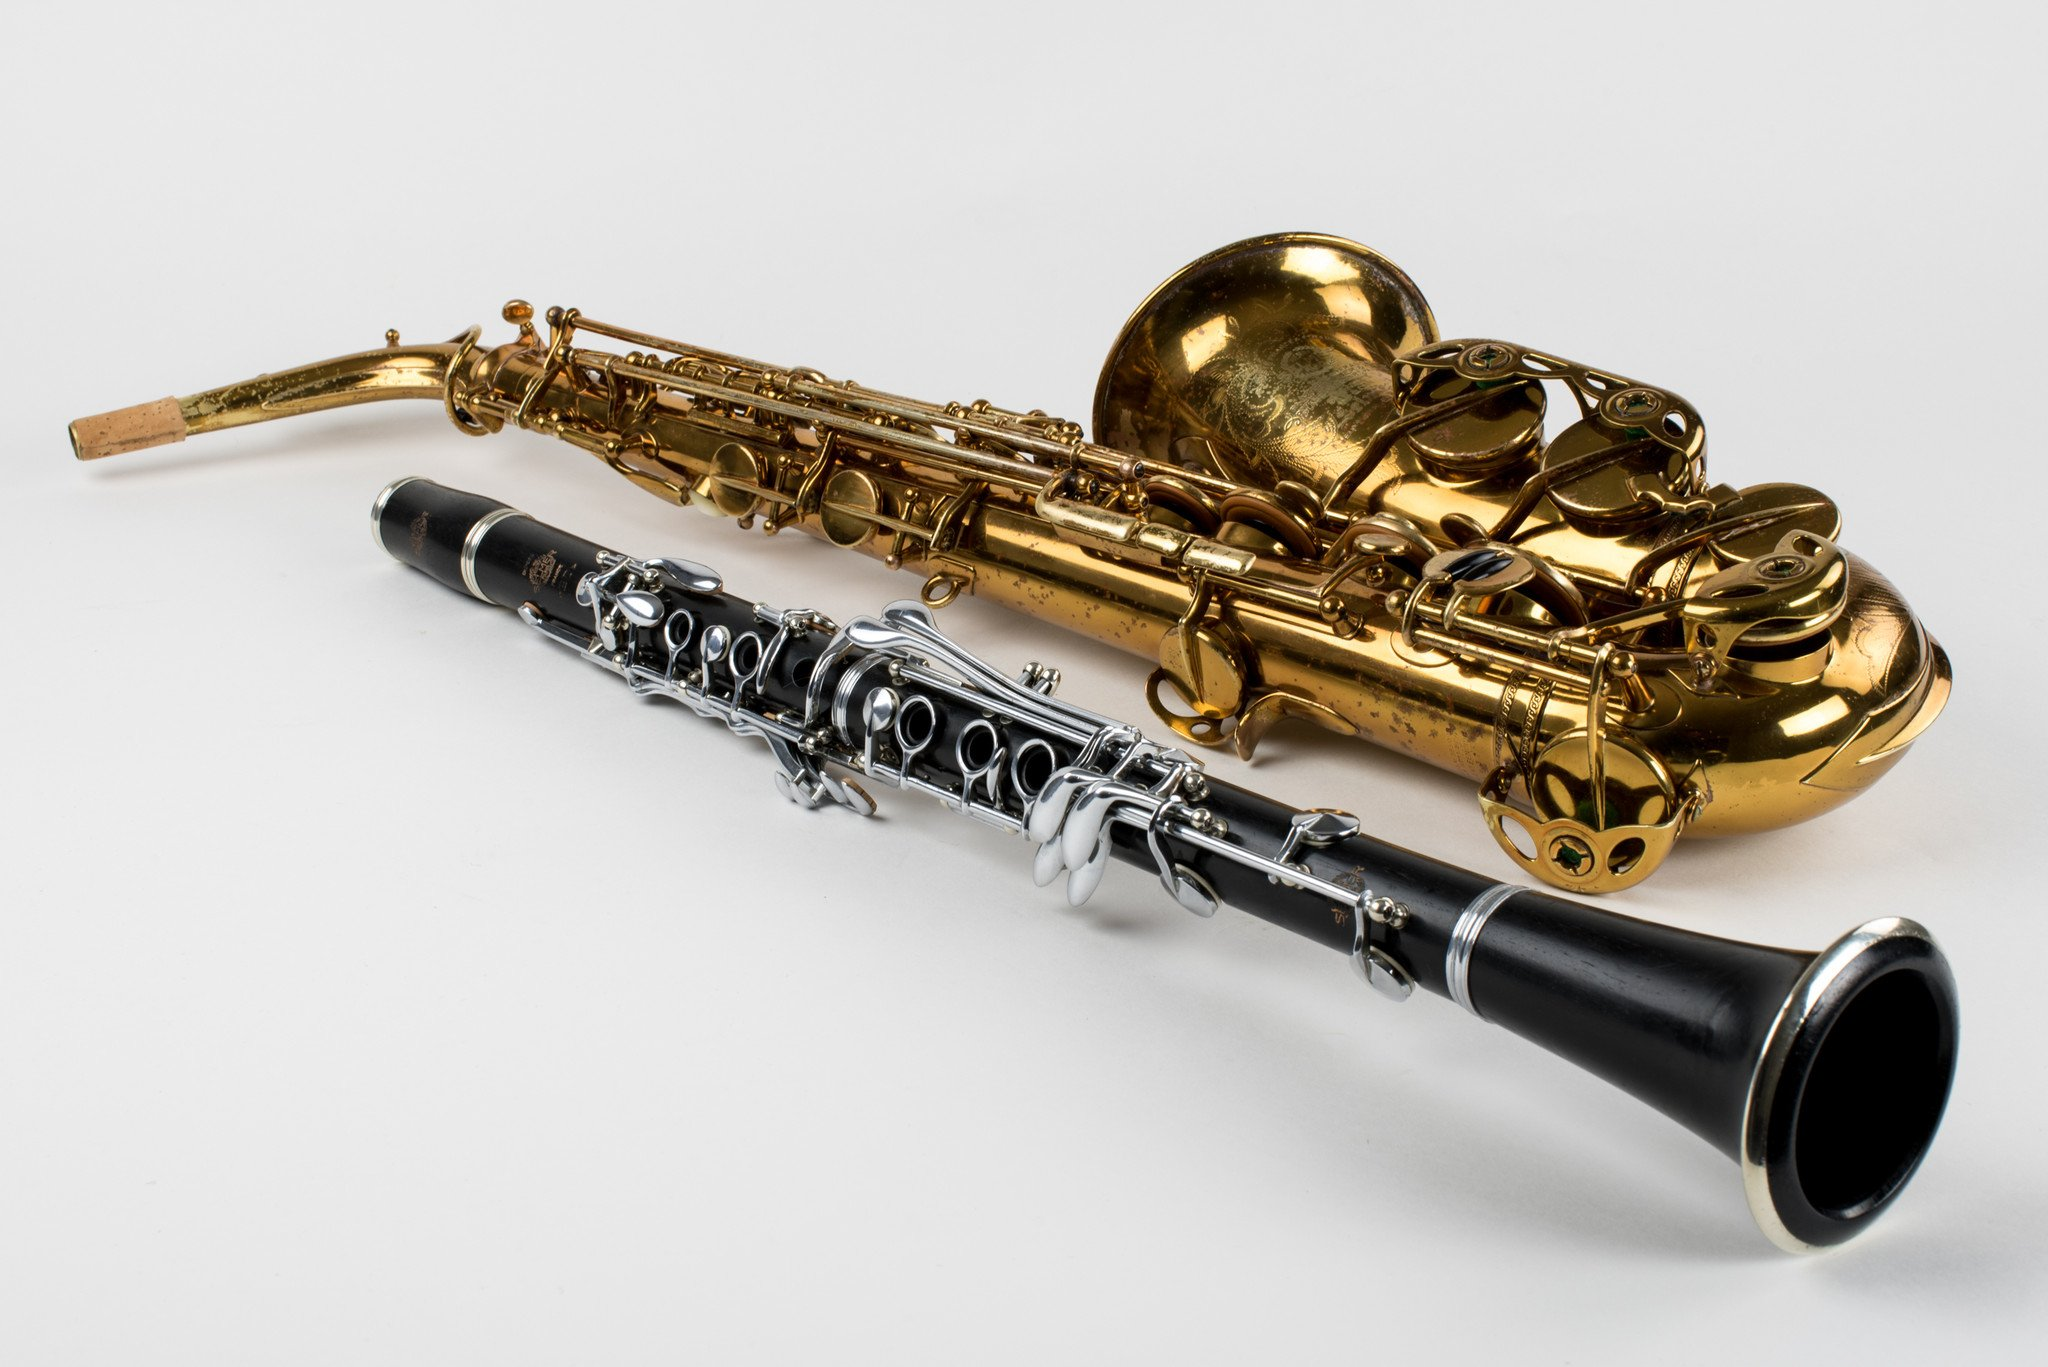 A saxophone and a clarinet